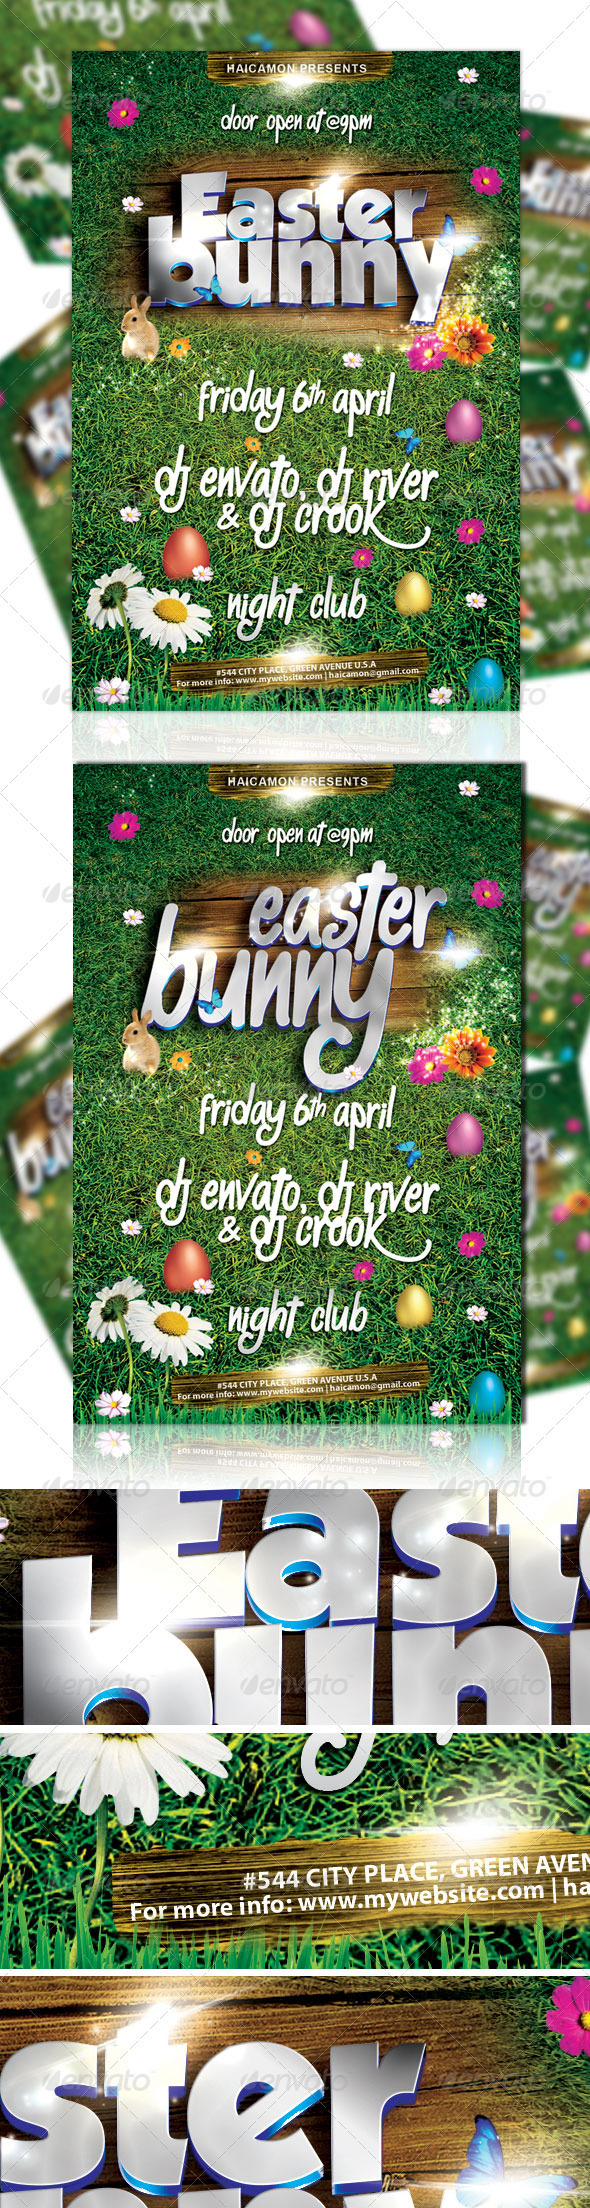 GraphicRiver Easter Bunny Party Flyer Vol 2 1904826